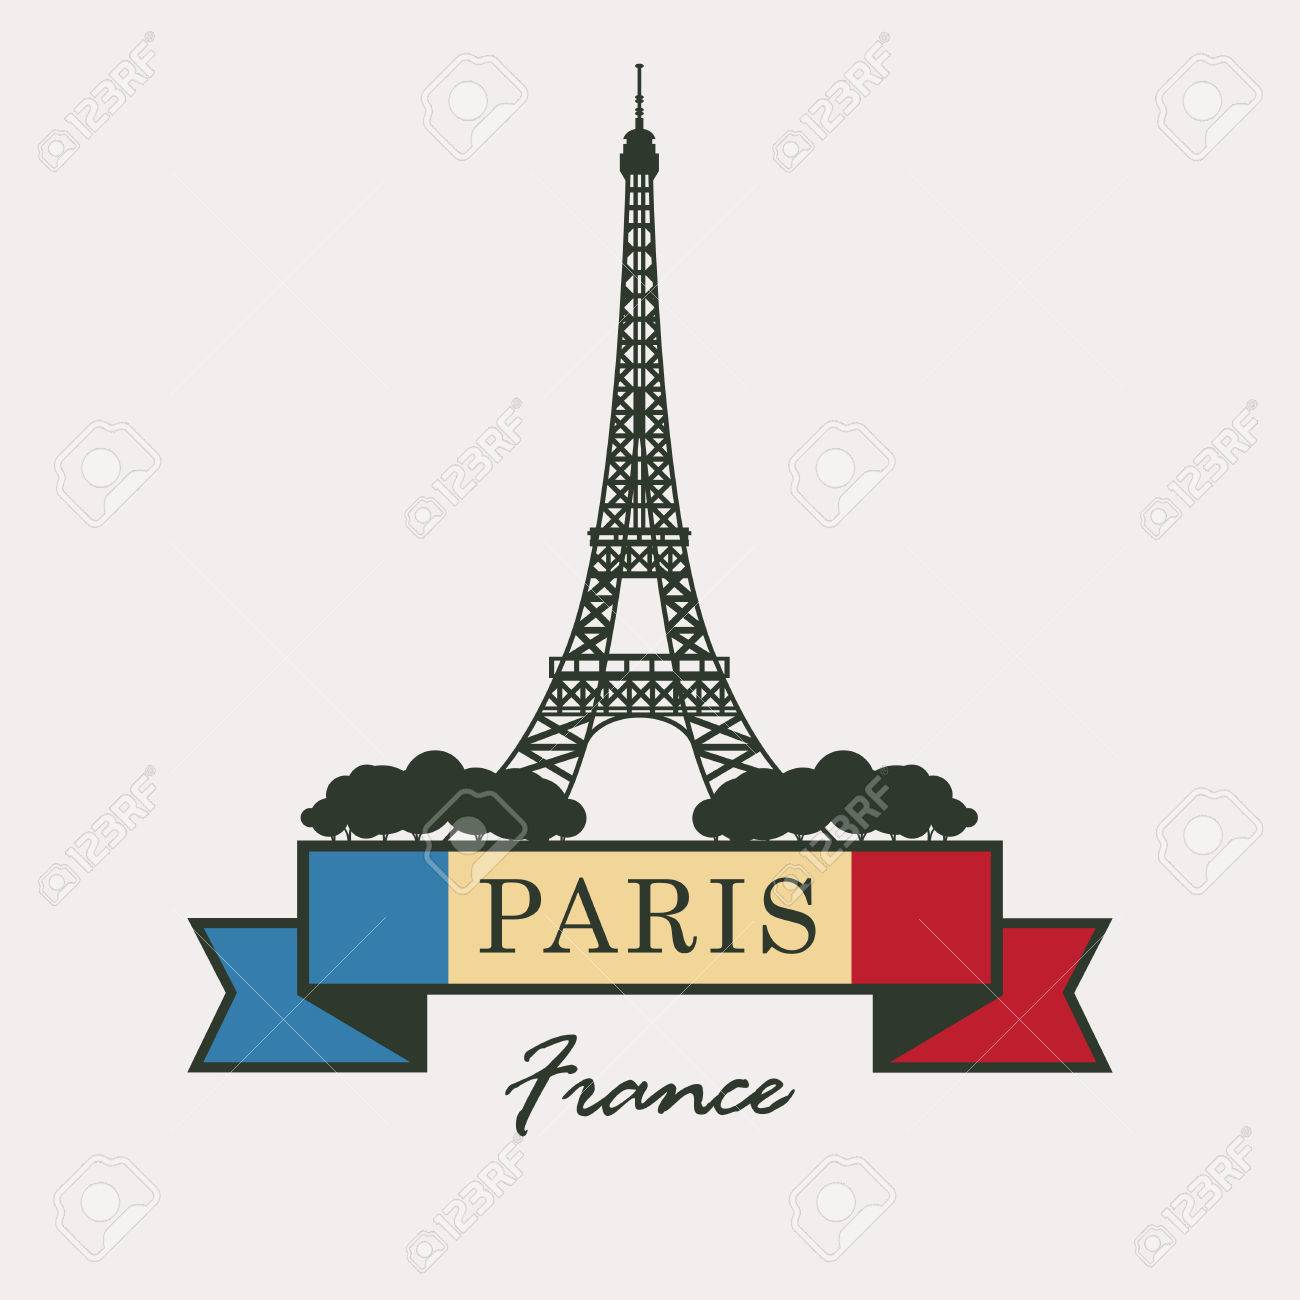 86+ Eiffel Tower Clipart.